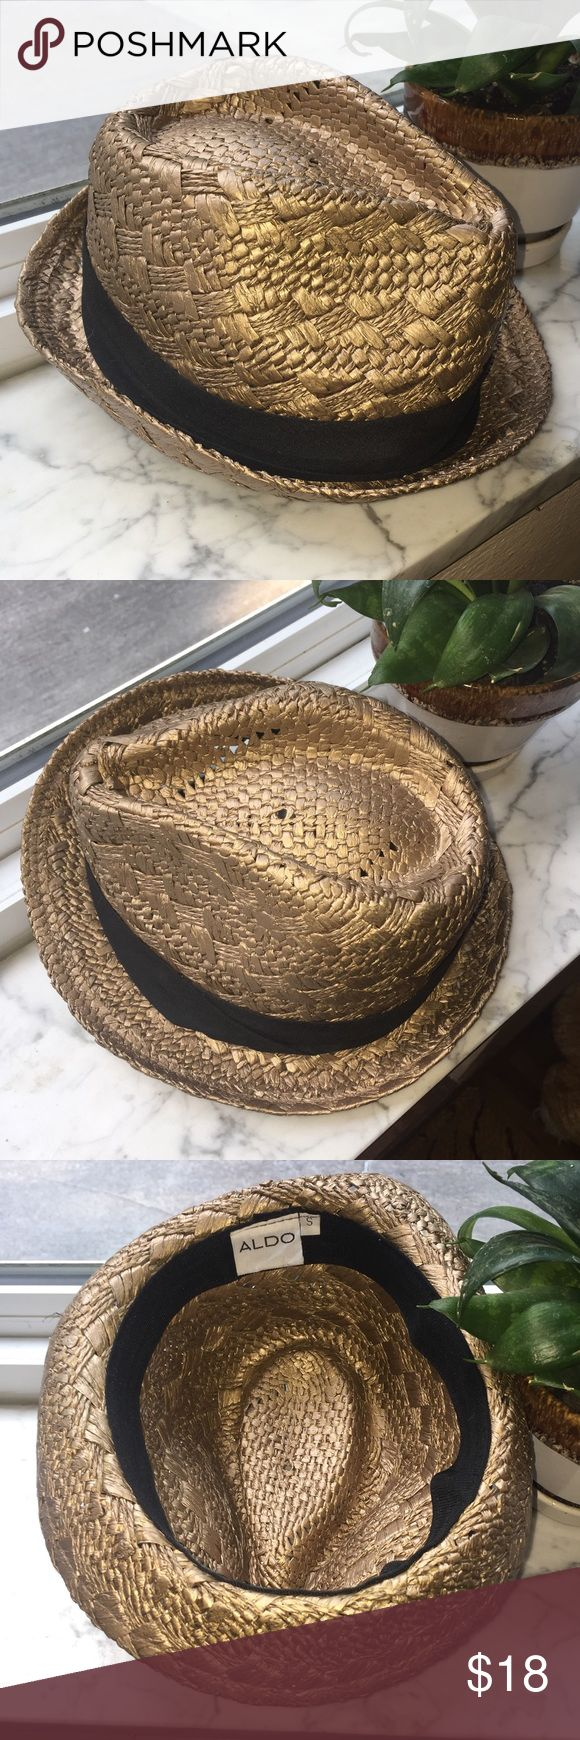 Gold Straw Fedora Gold straw fedora hat from Aldo. Never worn. It's a little warped from storage, but it goes back to its shape and looks perfect when worn. Let me know if you have any questions! Aldo Accessories Hats